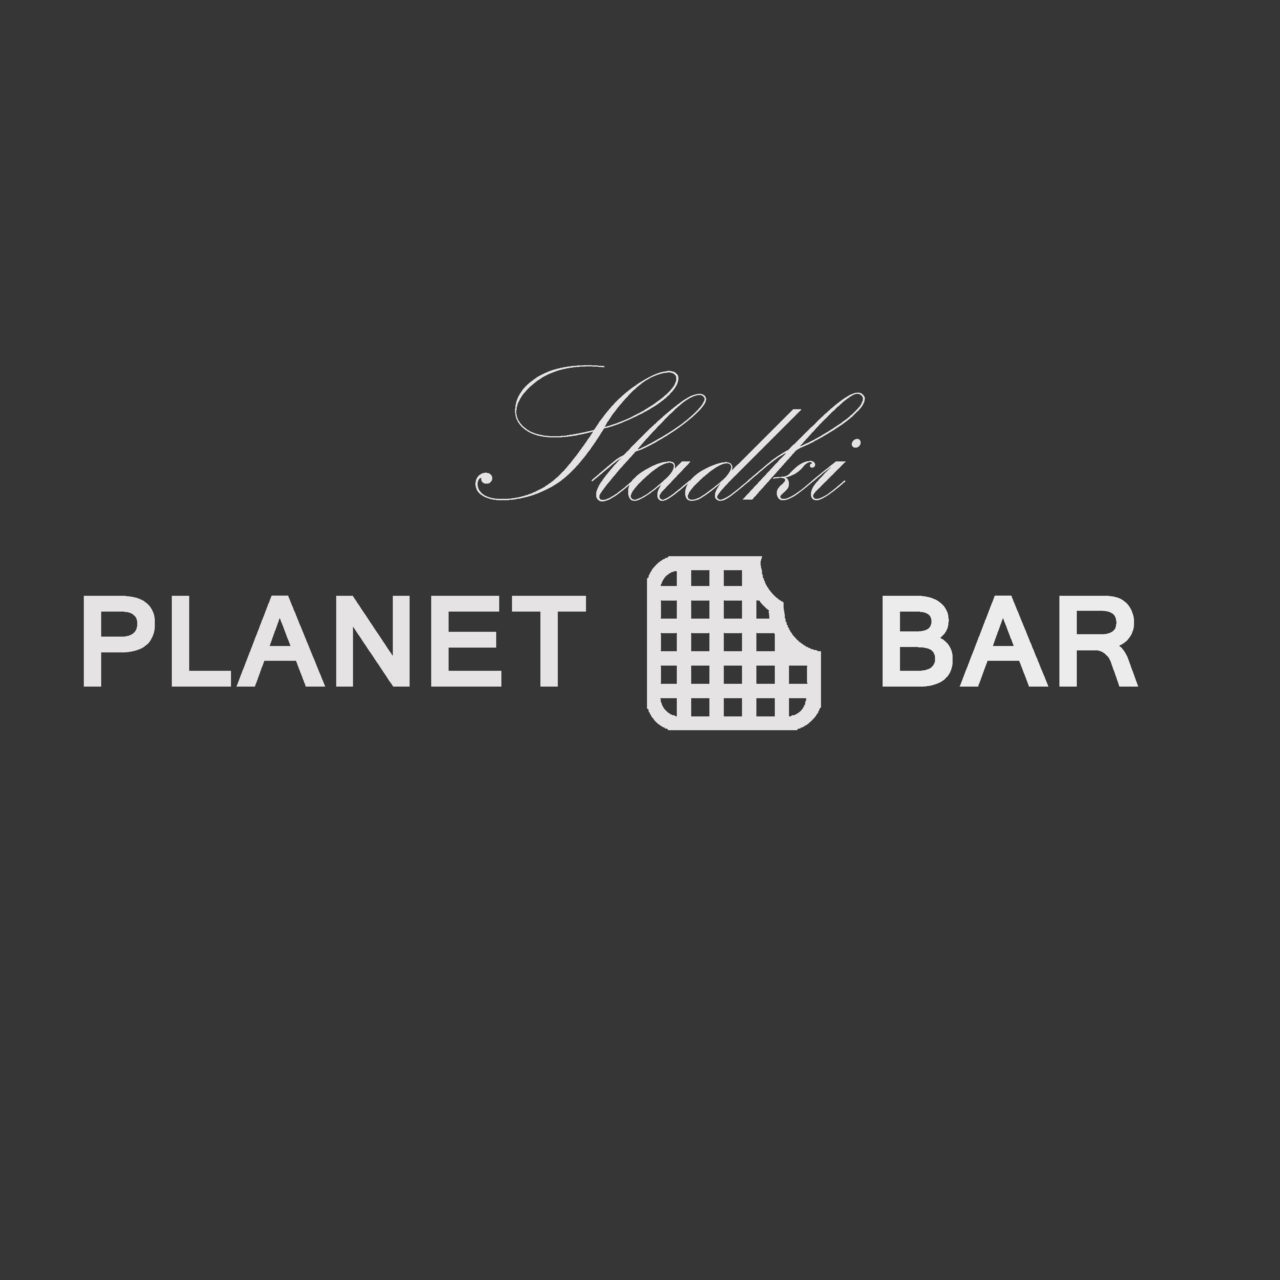 Sladki Planet bar